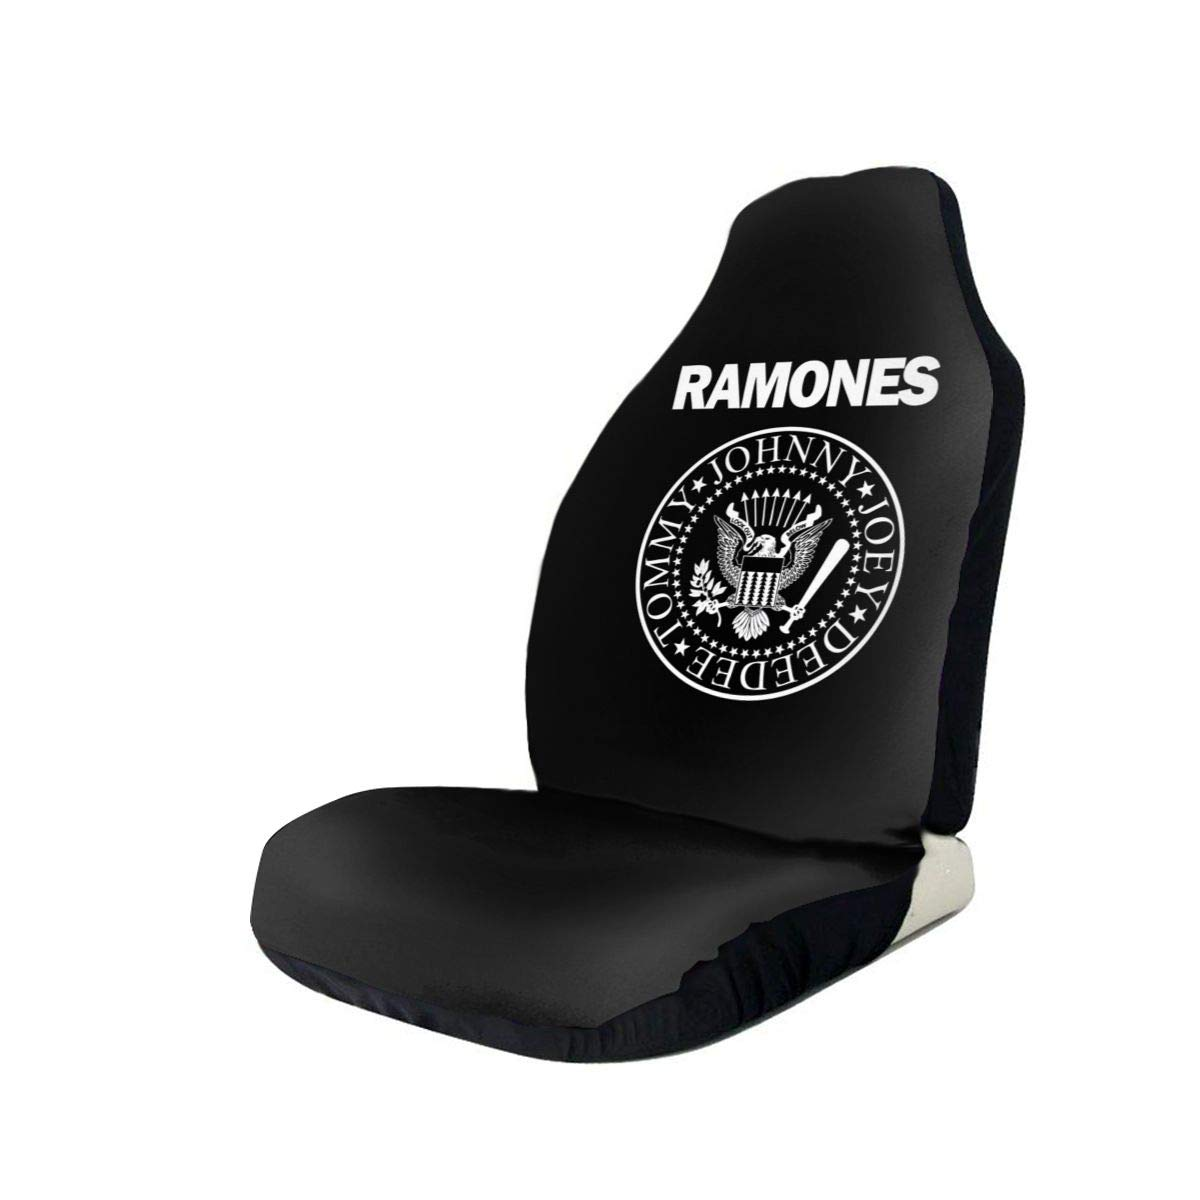 Ramones Logo Anti-Skid and Waterproof Car Seat Covers Protector Fits Most Cars, Auto SUVs Trucks